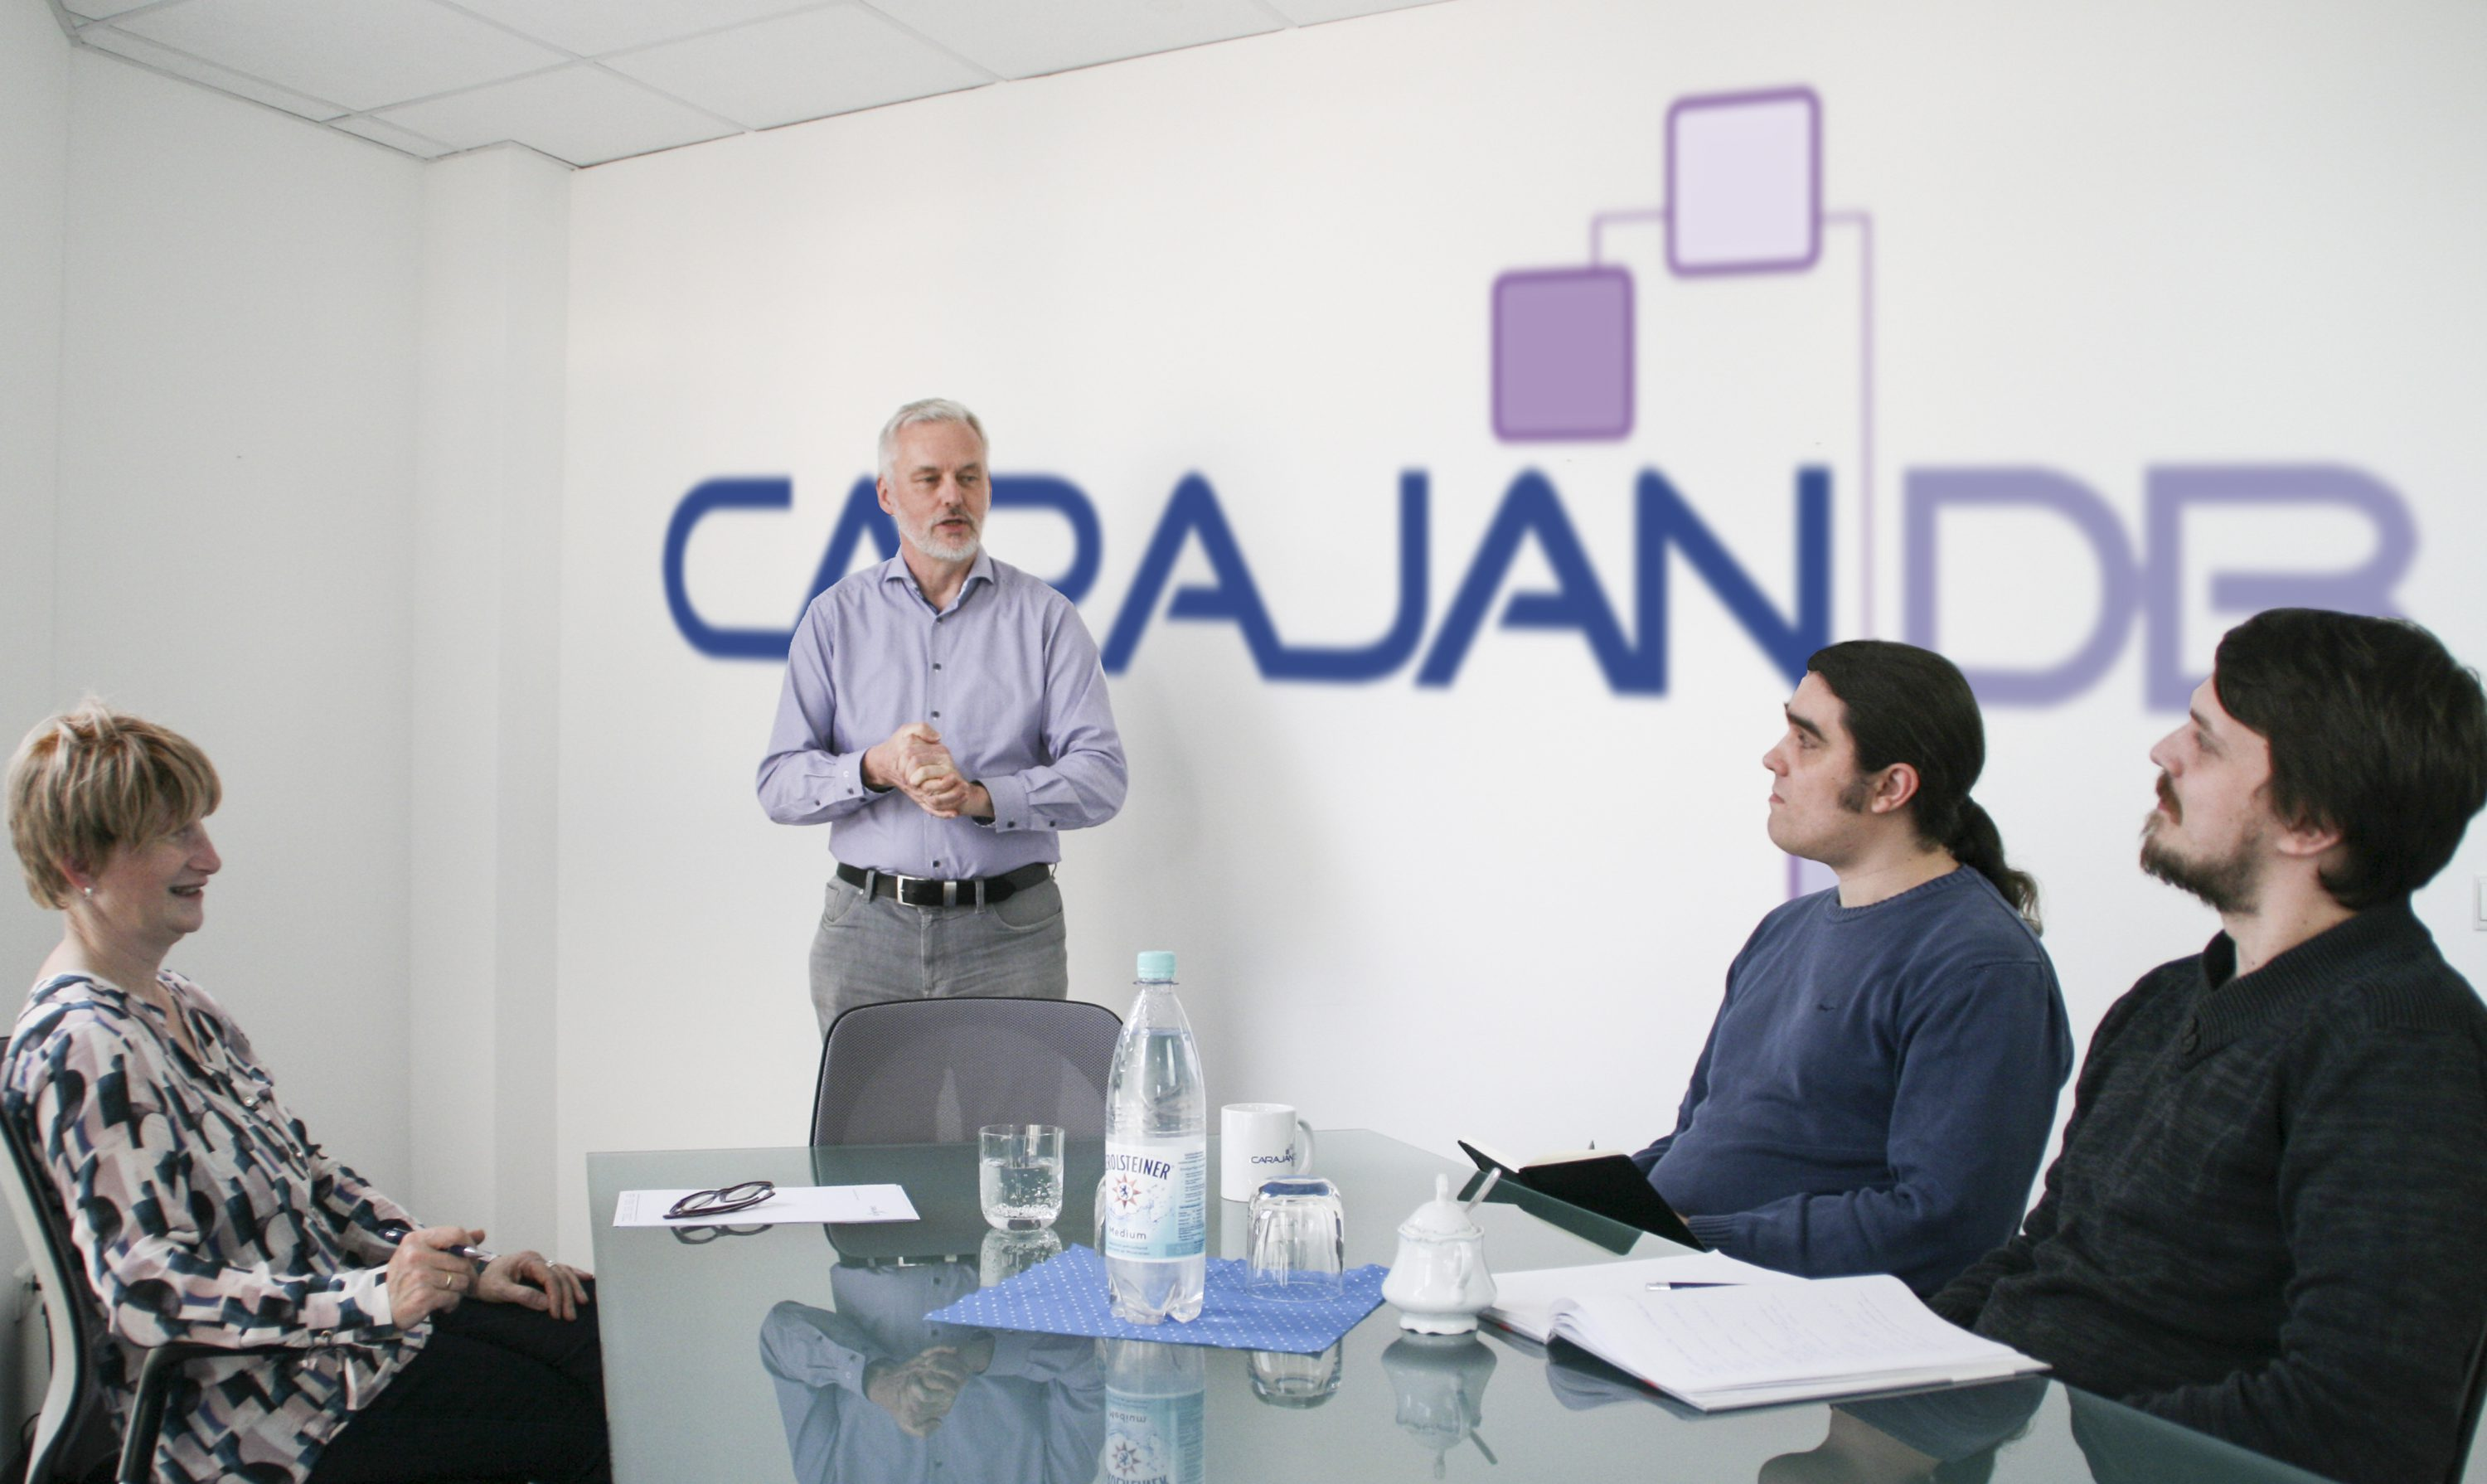 CarajanDB - The Oracle Database Experts!